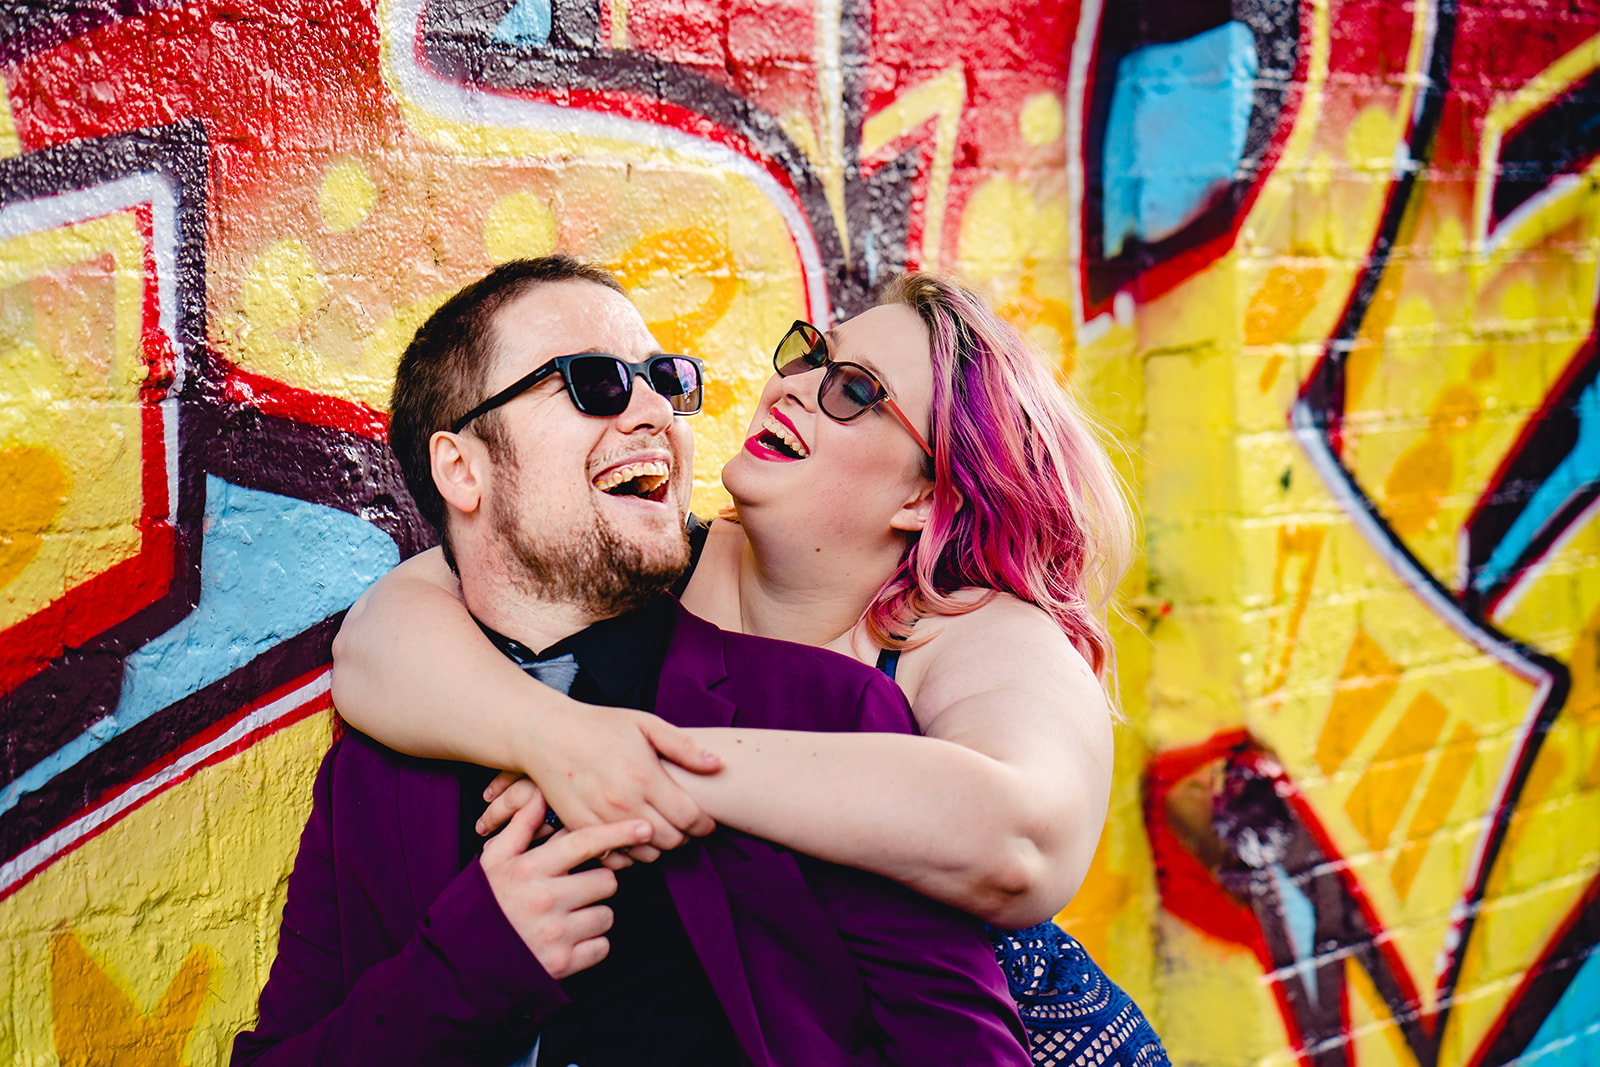 engagement shoots - birmingham engagement shoot - colourful wedding photoshoot - quirky wedding photos - fun wedding photography - alternative wedding - colourful couple